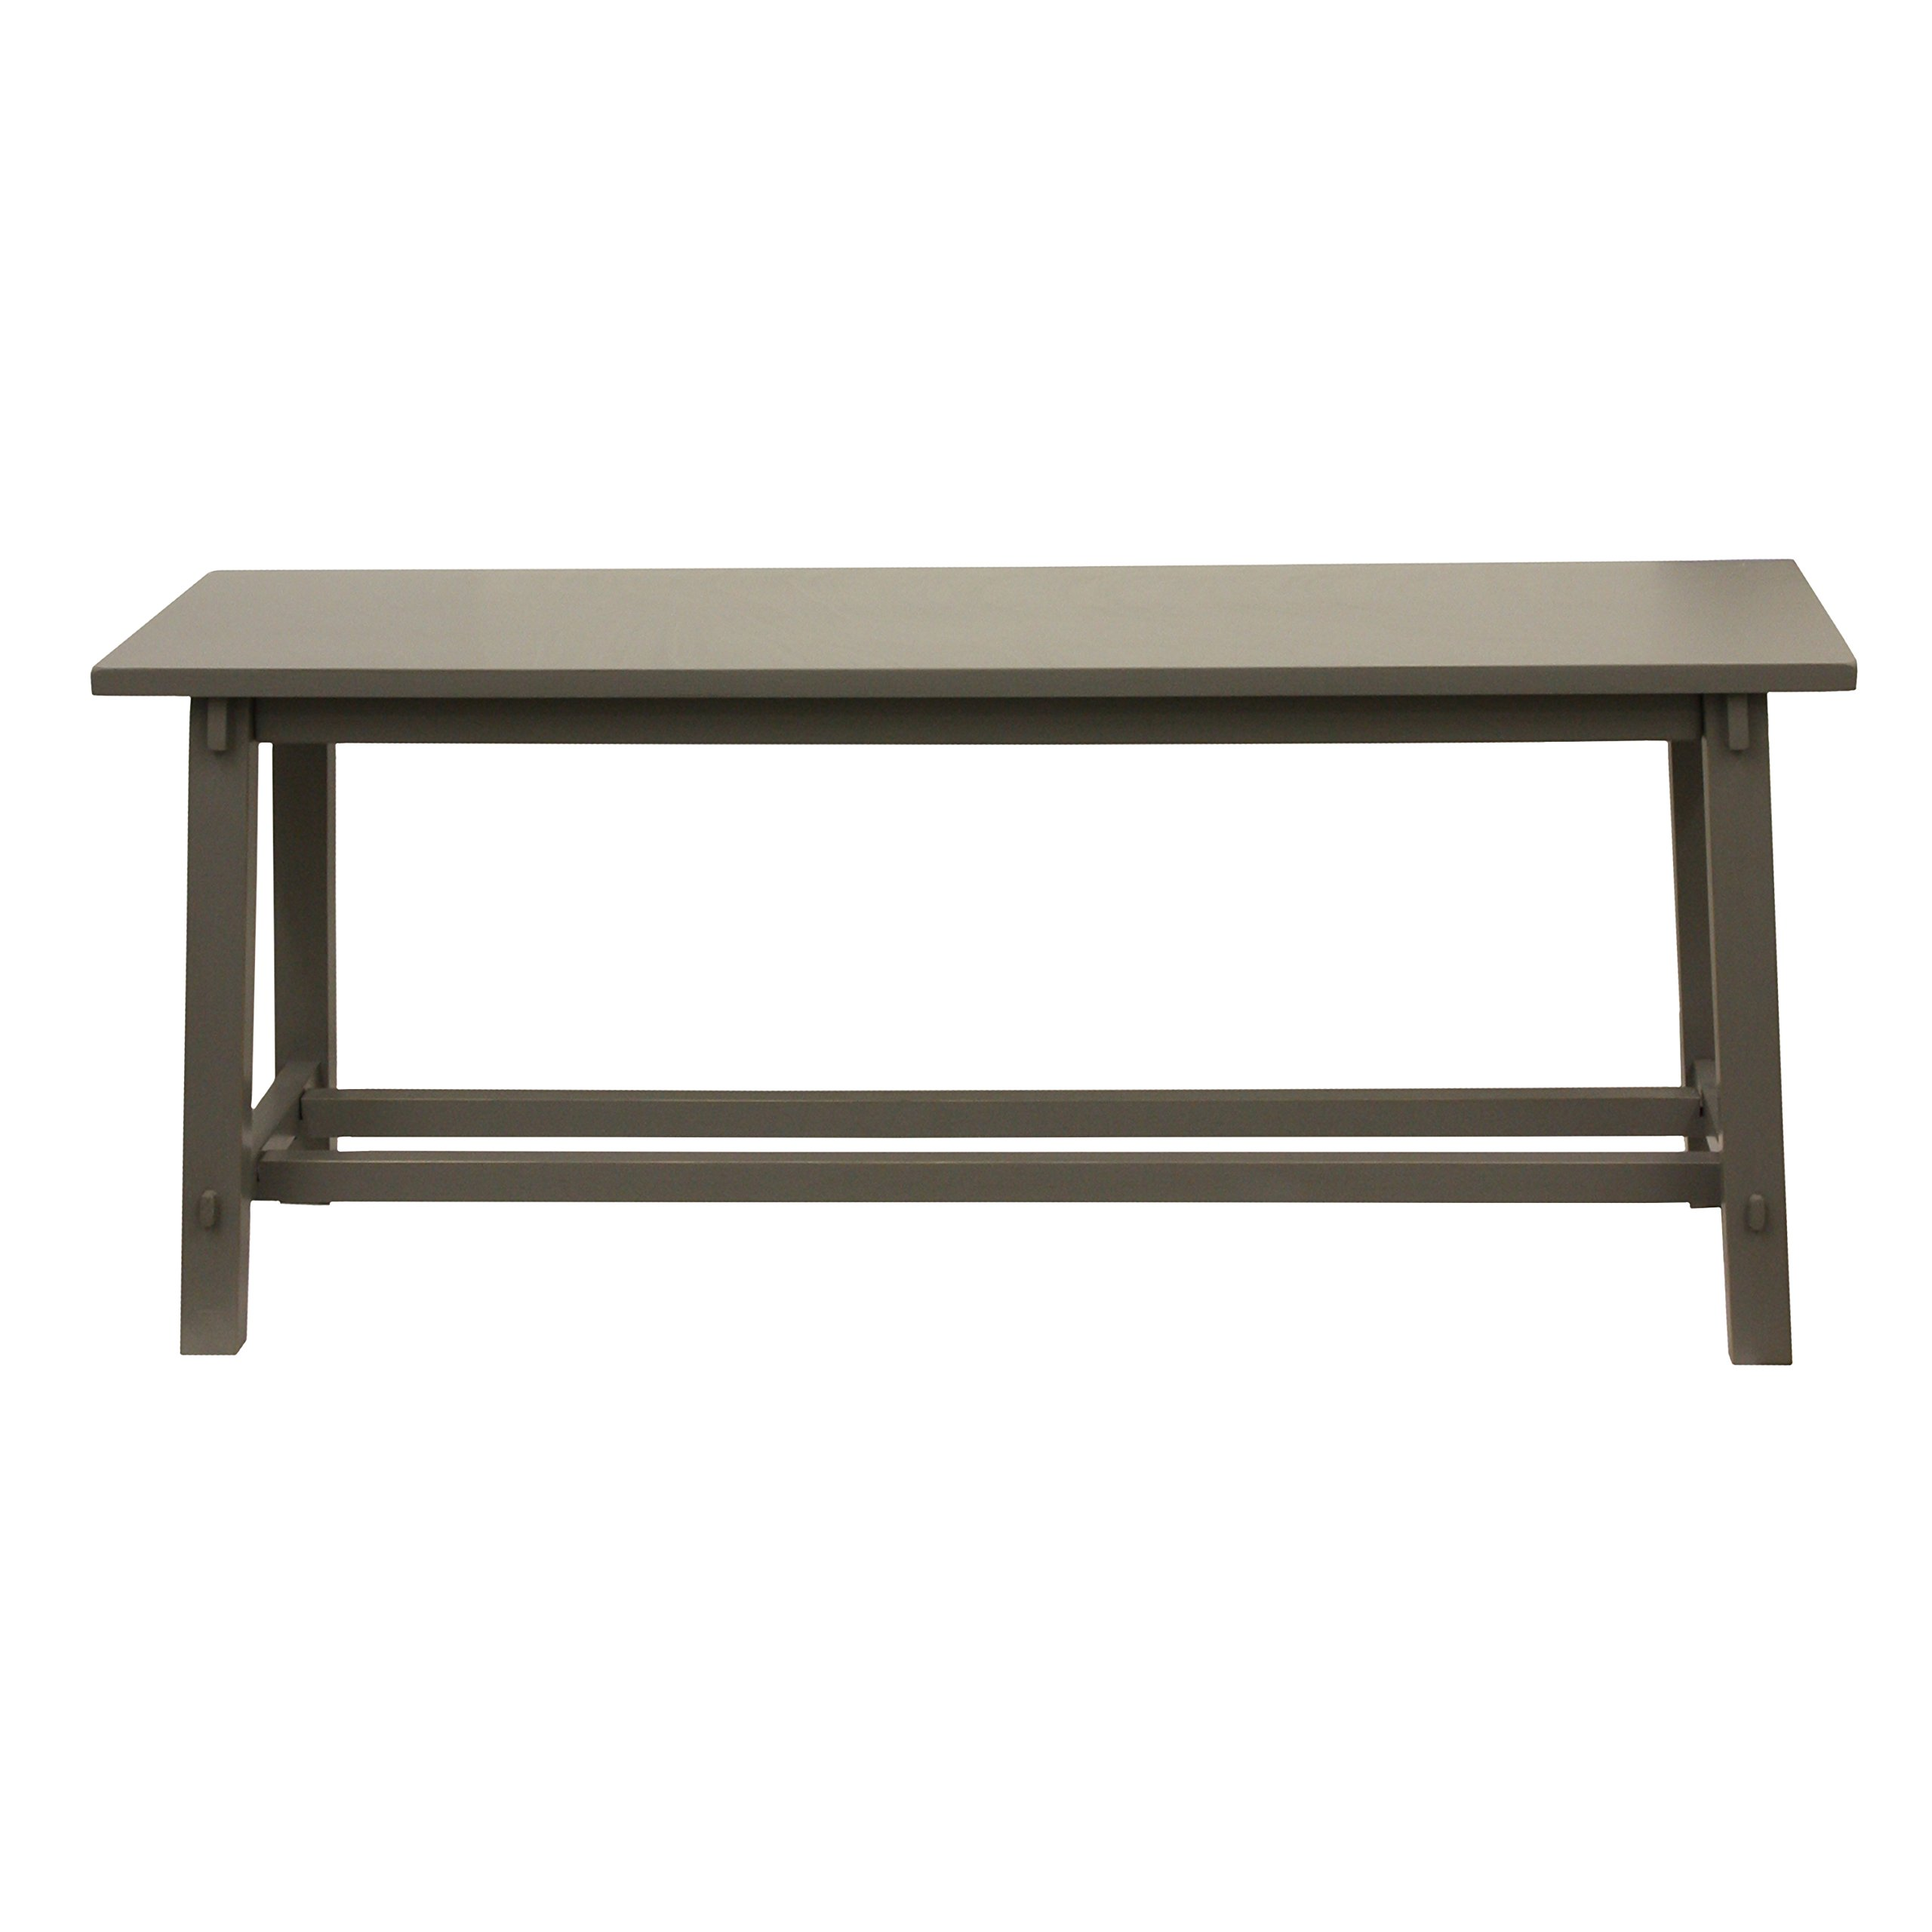 Décor Therapy FR1869 Eased Edge Bench, Grey